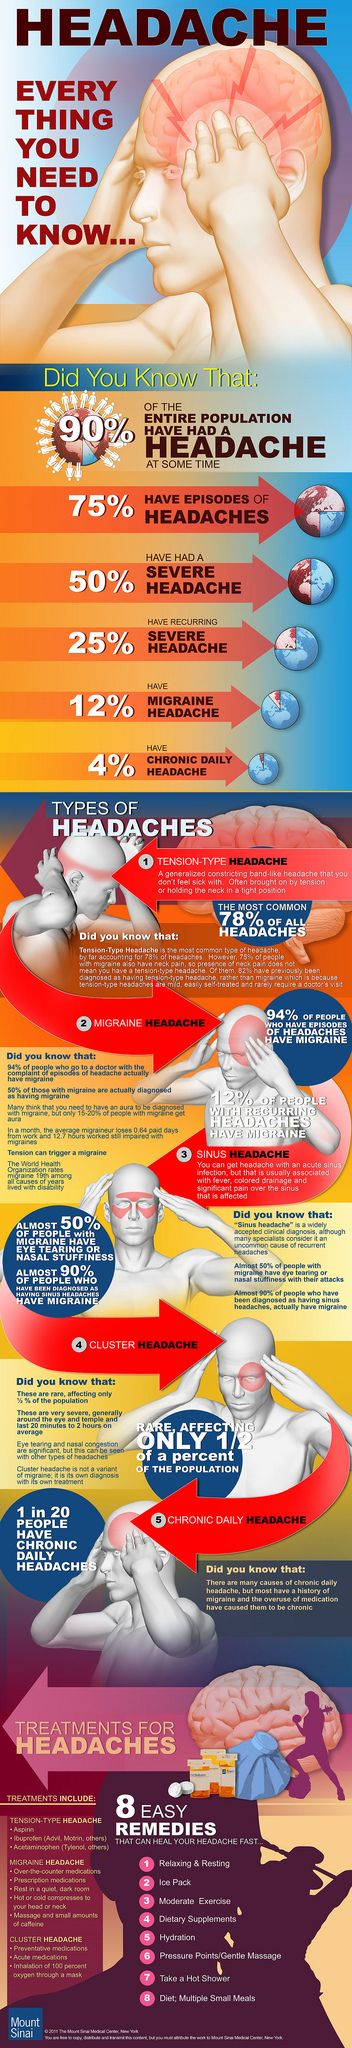 https://flic.kr/p/dP6ynA | All About Headaches Infographic